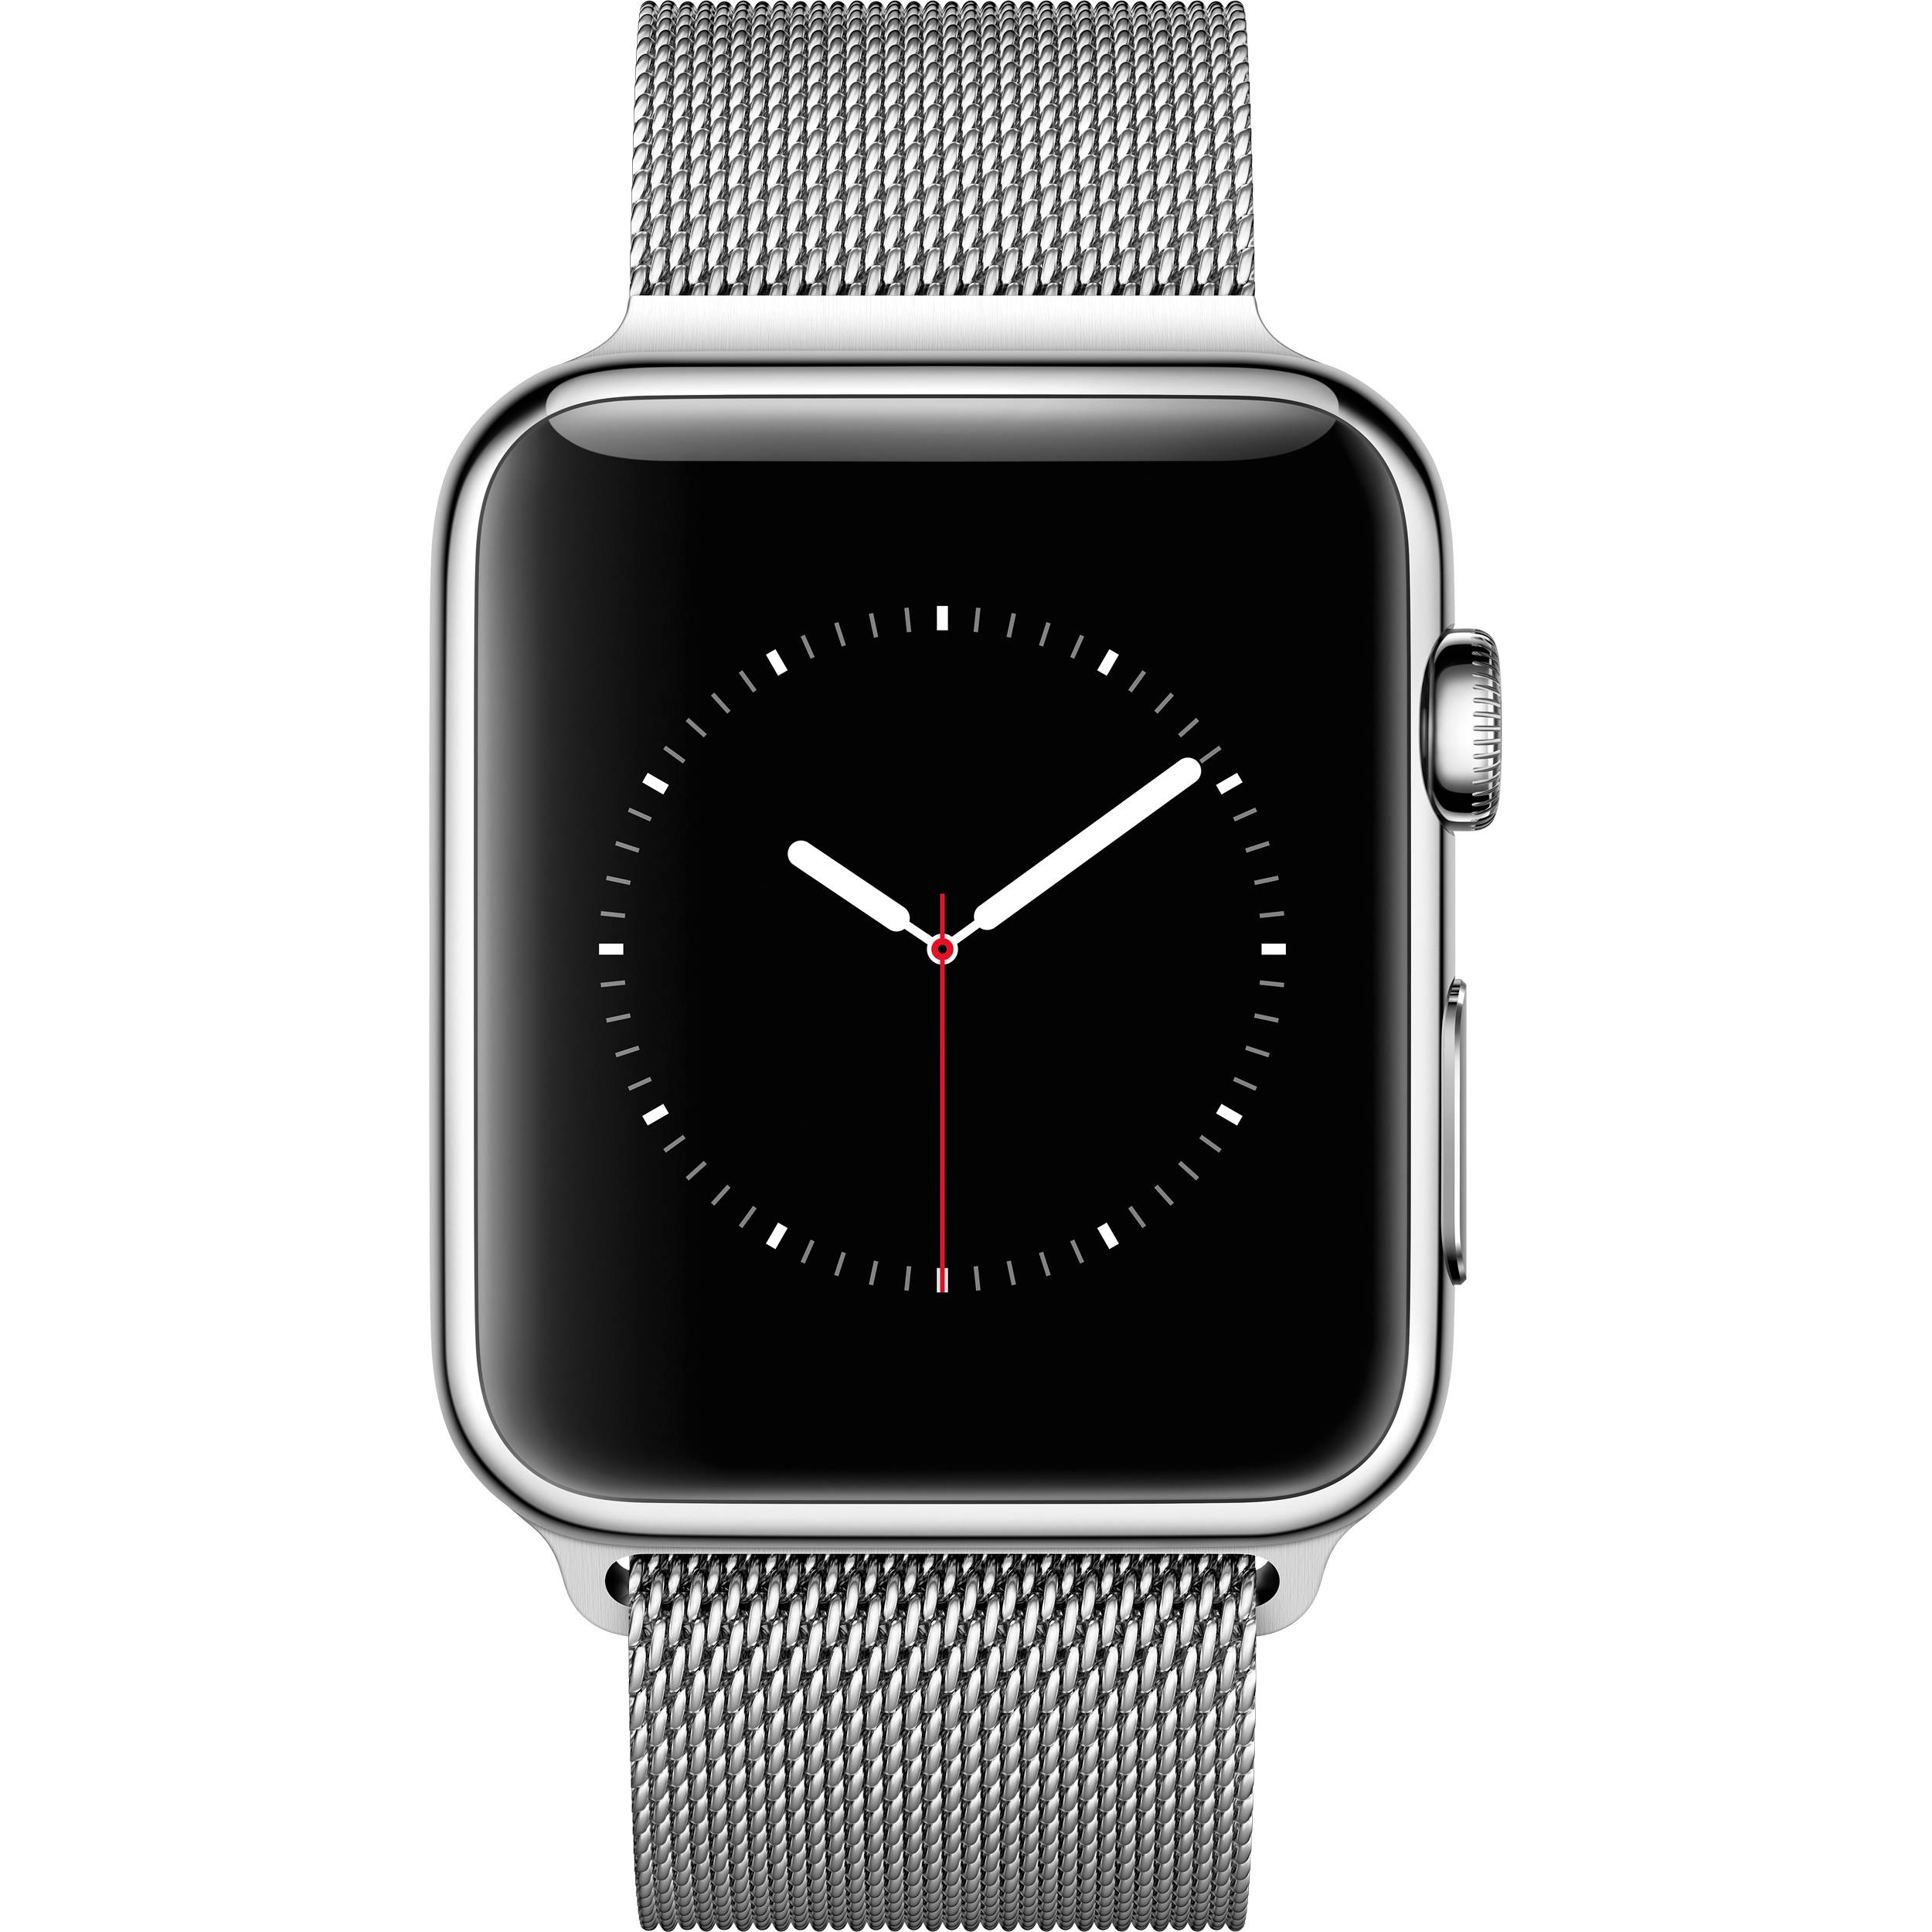 loop watches metal experience stainless attitude with open my apple band on milanese try steel watch wrist